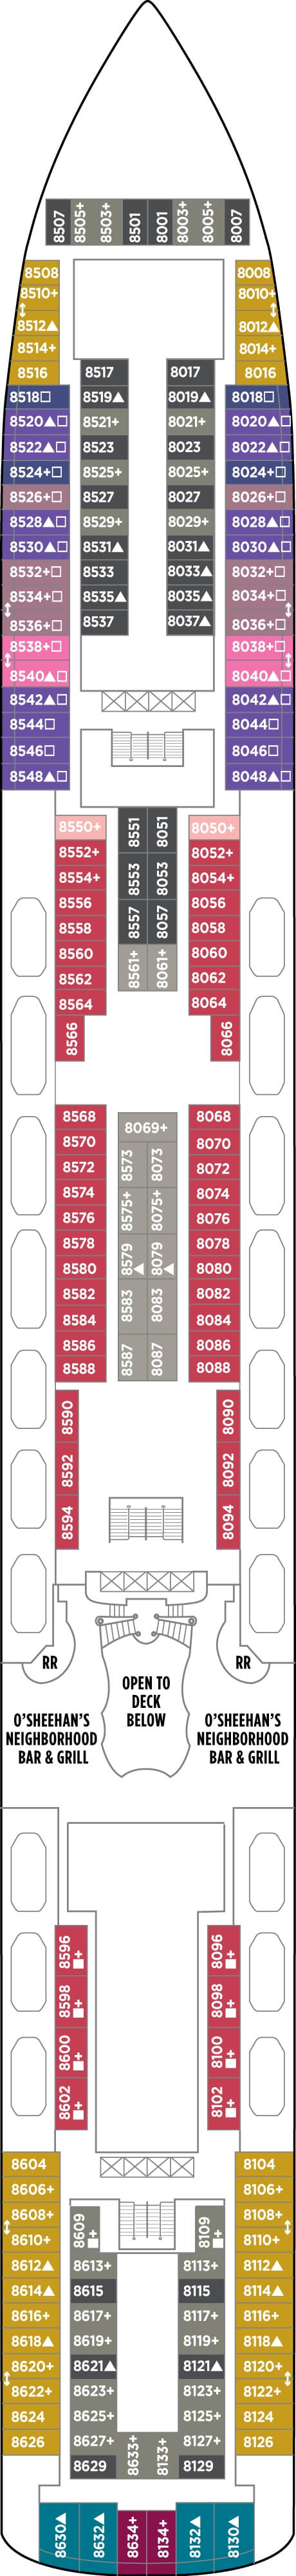 Norwegian Gem Deck 8 layout